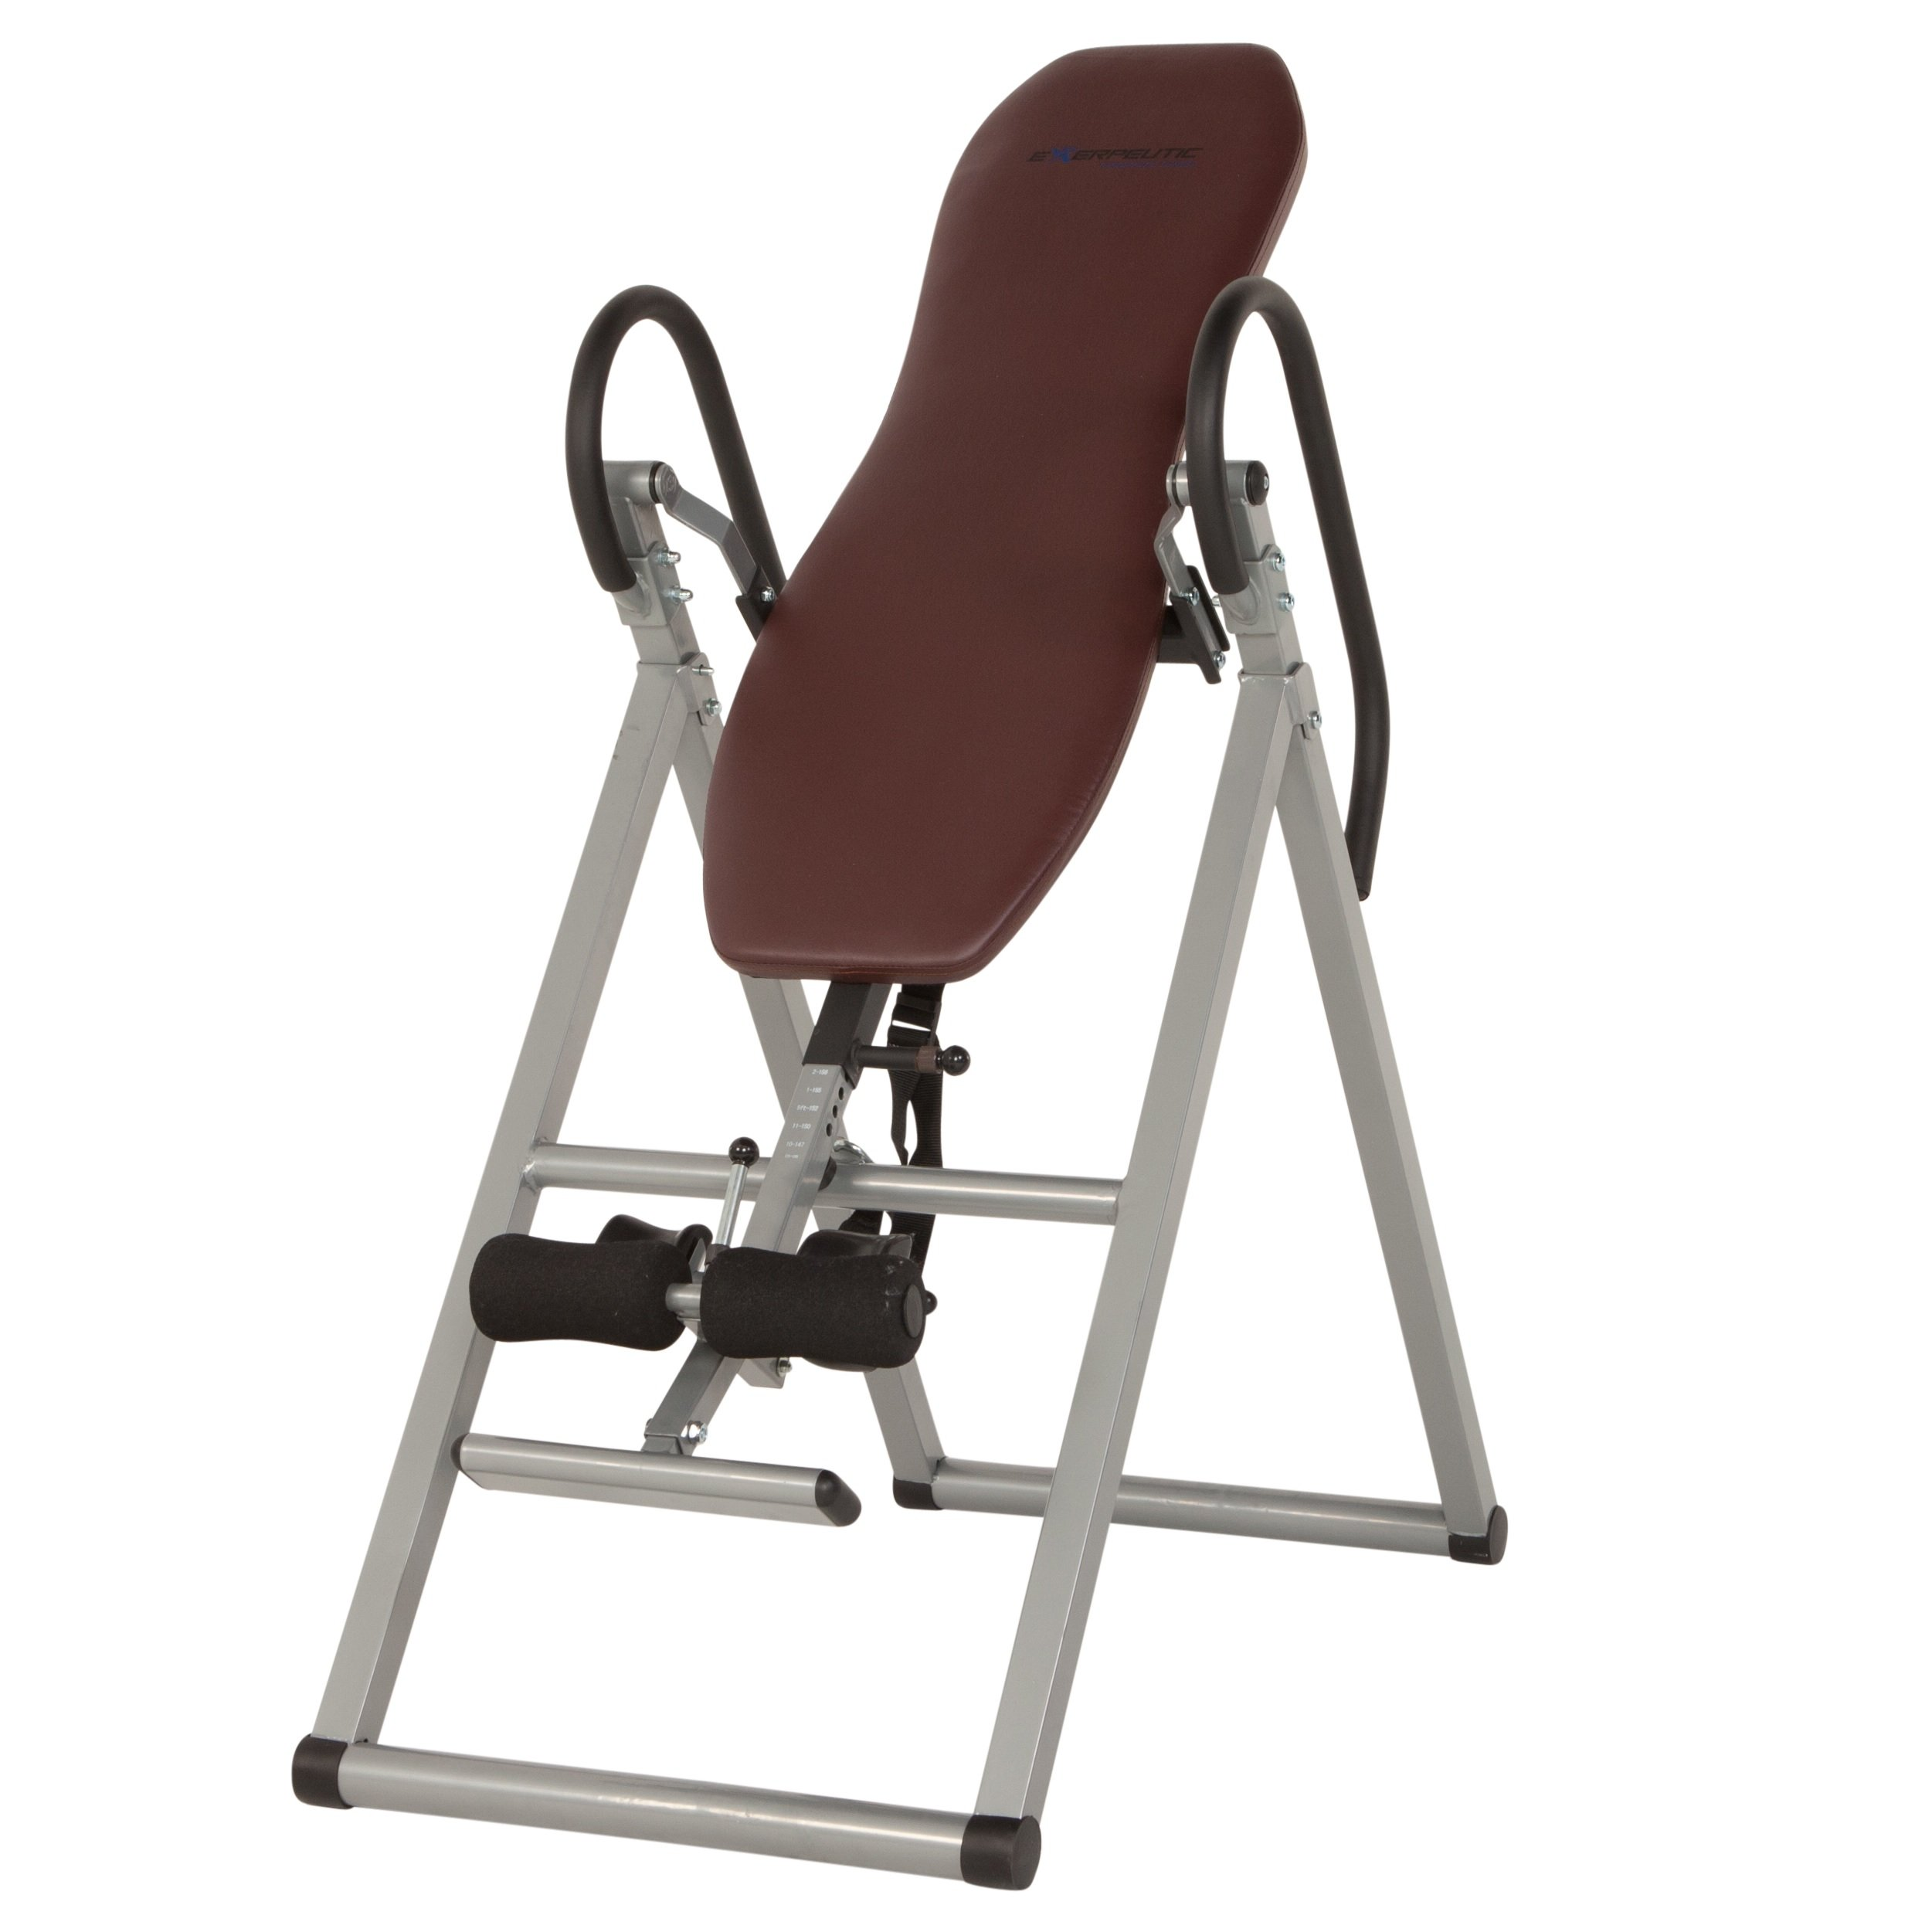 Exerpeutic Inversion Table with Comfort Foam Backrest by Exerpeutic